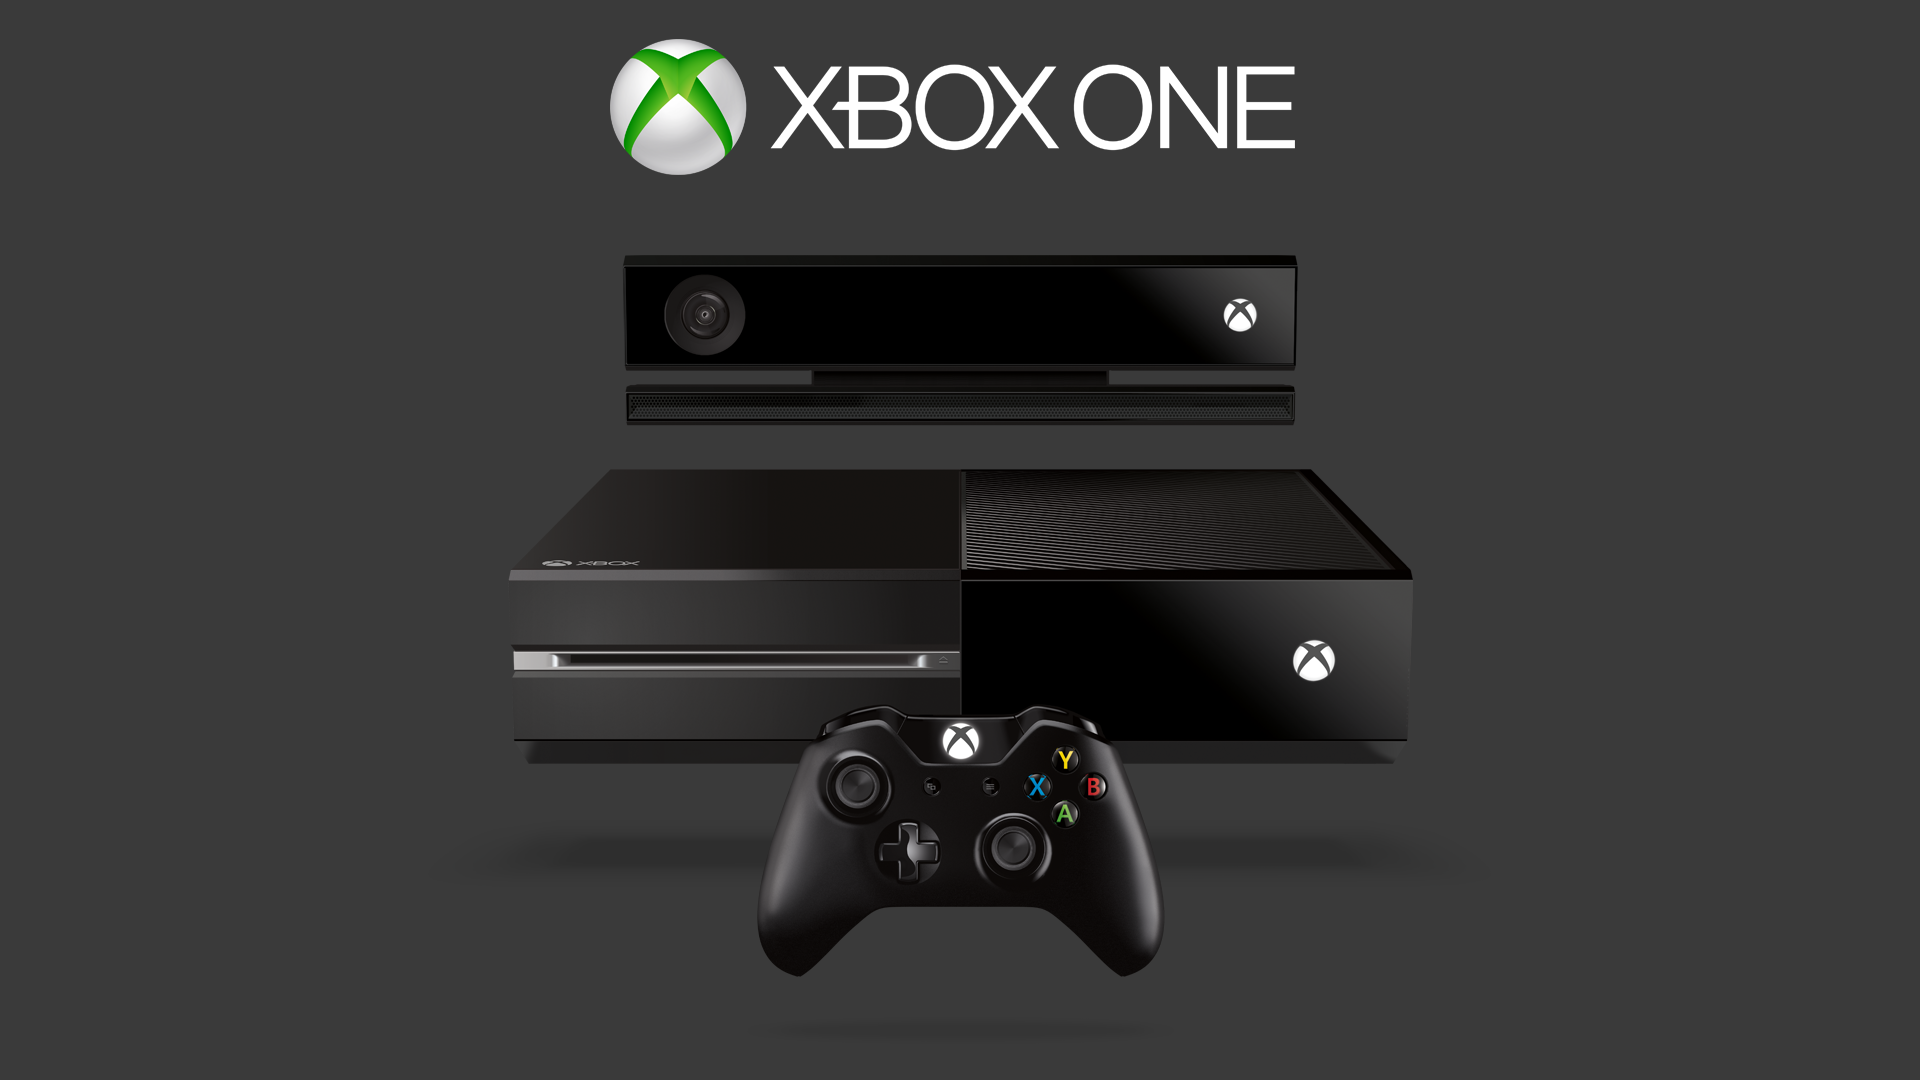 Xbox one wallpaper 1080p wallpapersafari - Xbox one wallpaper ...